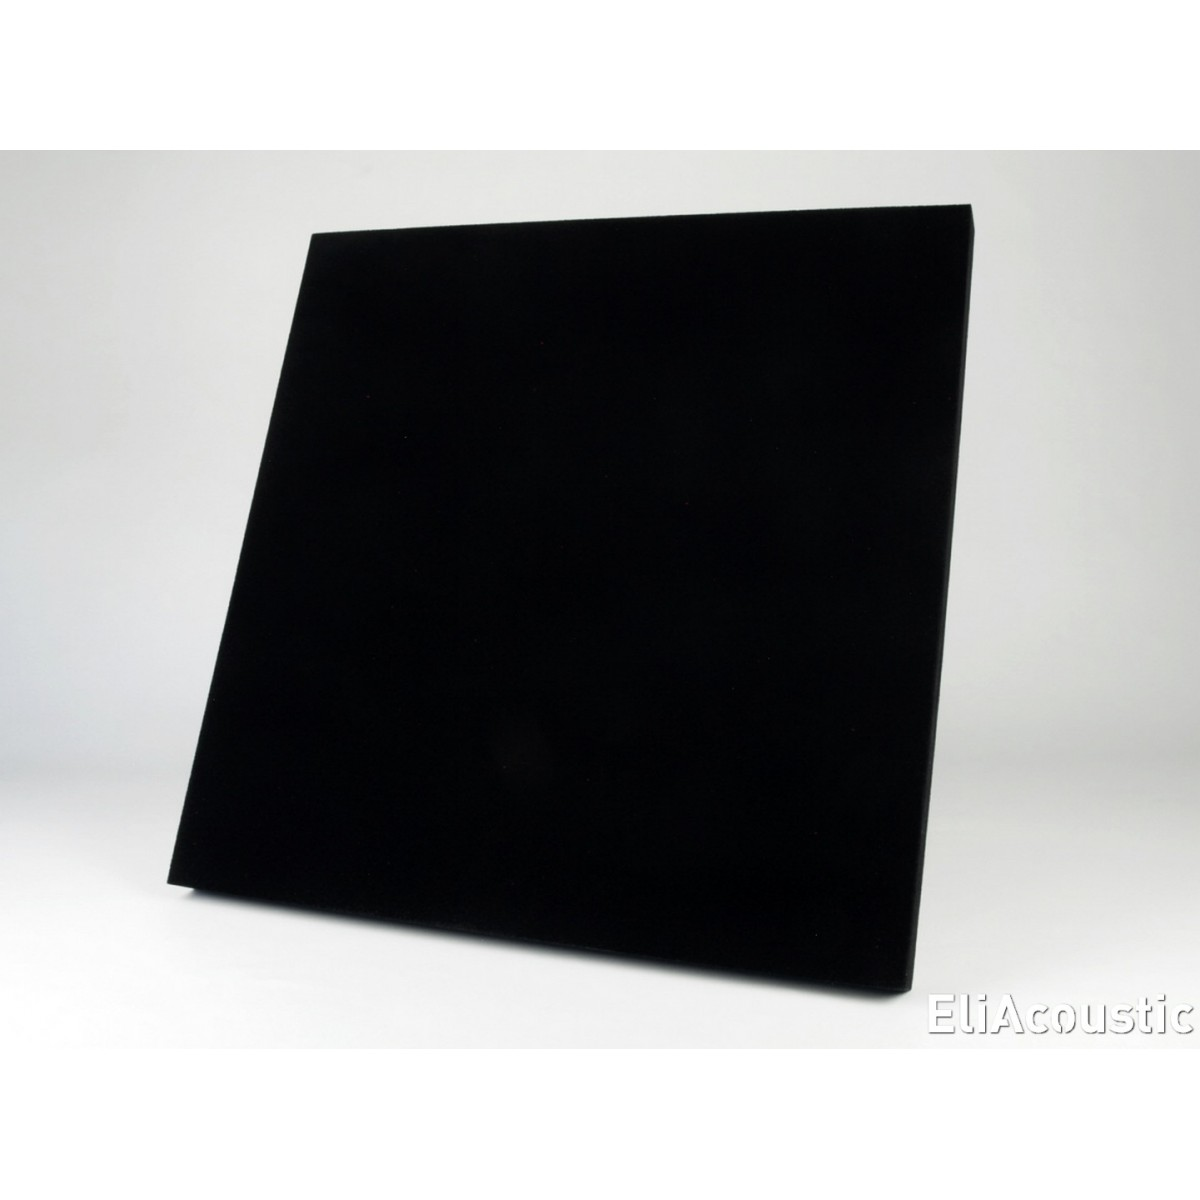 EliAcoustic Regular 60.2 Premiere Black (Ref 2802)